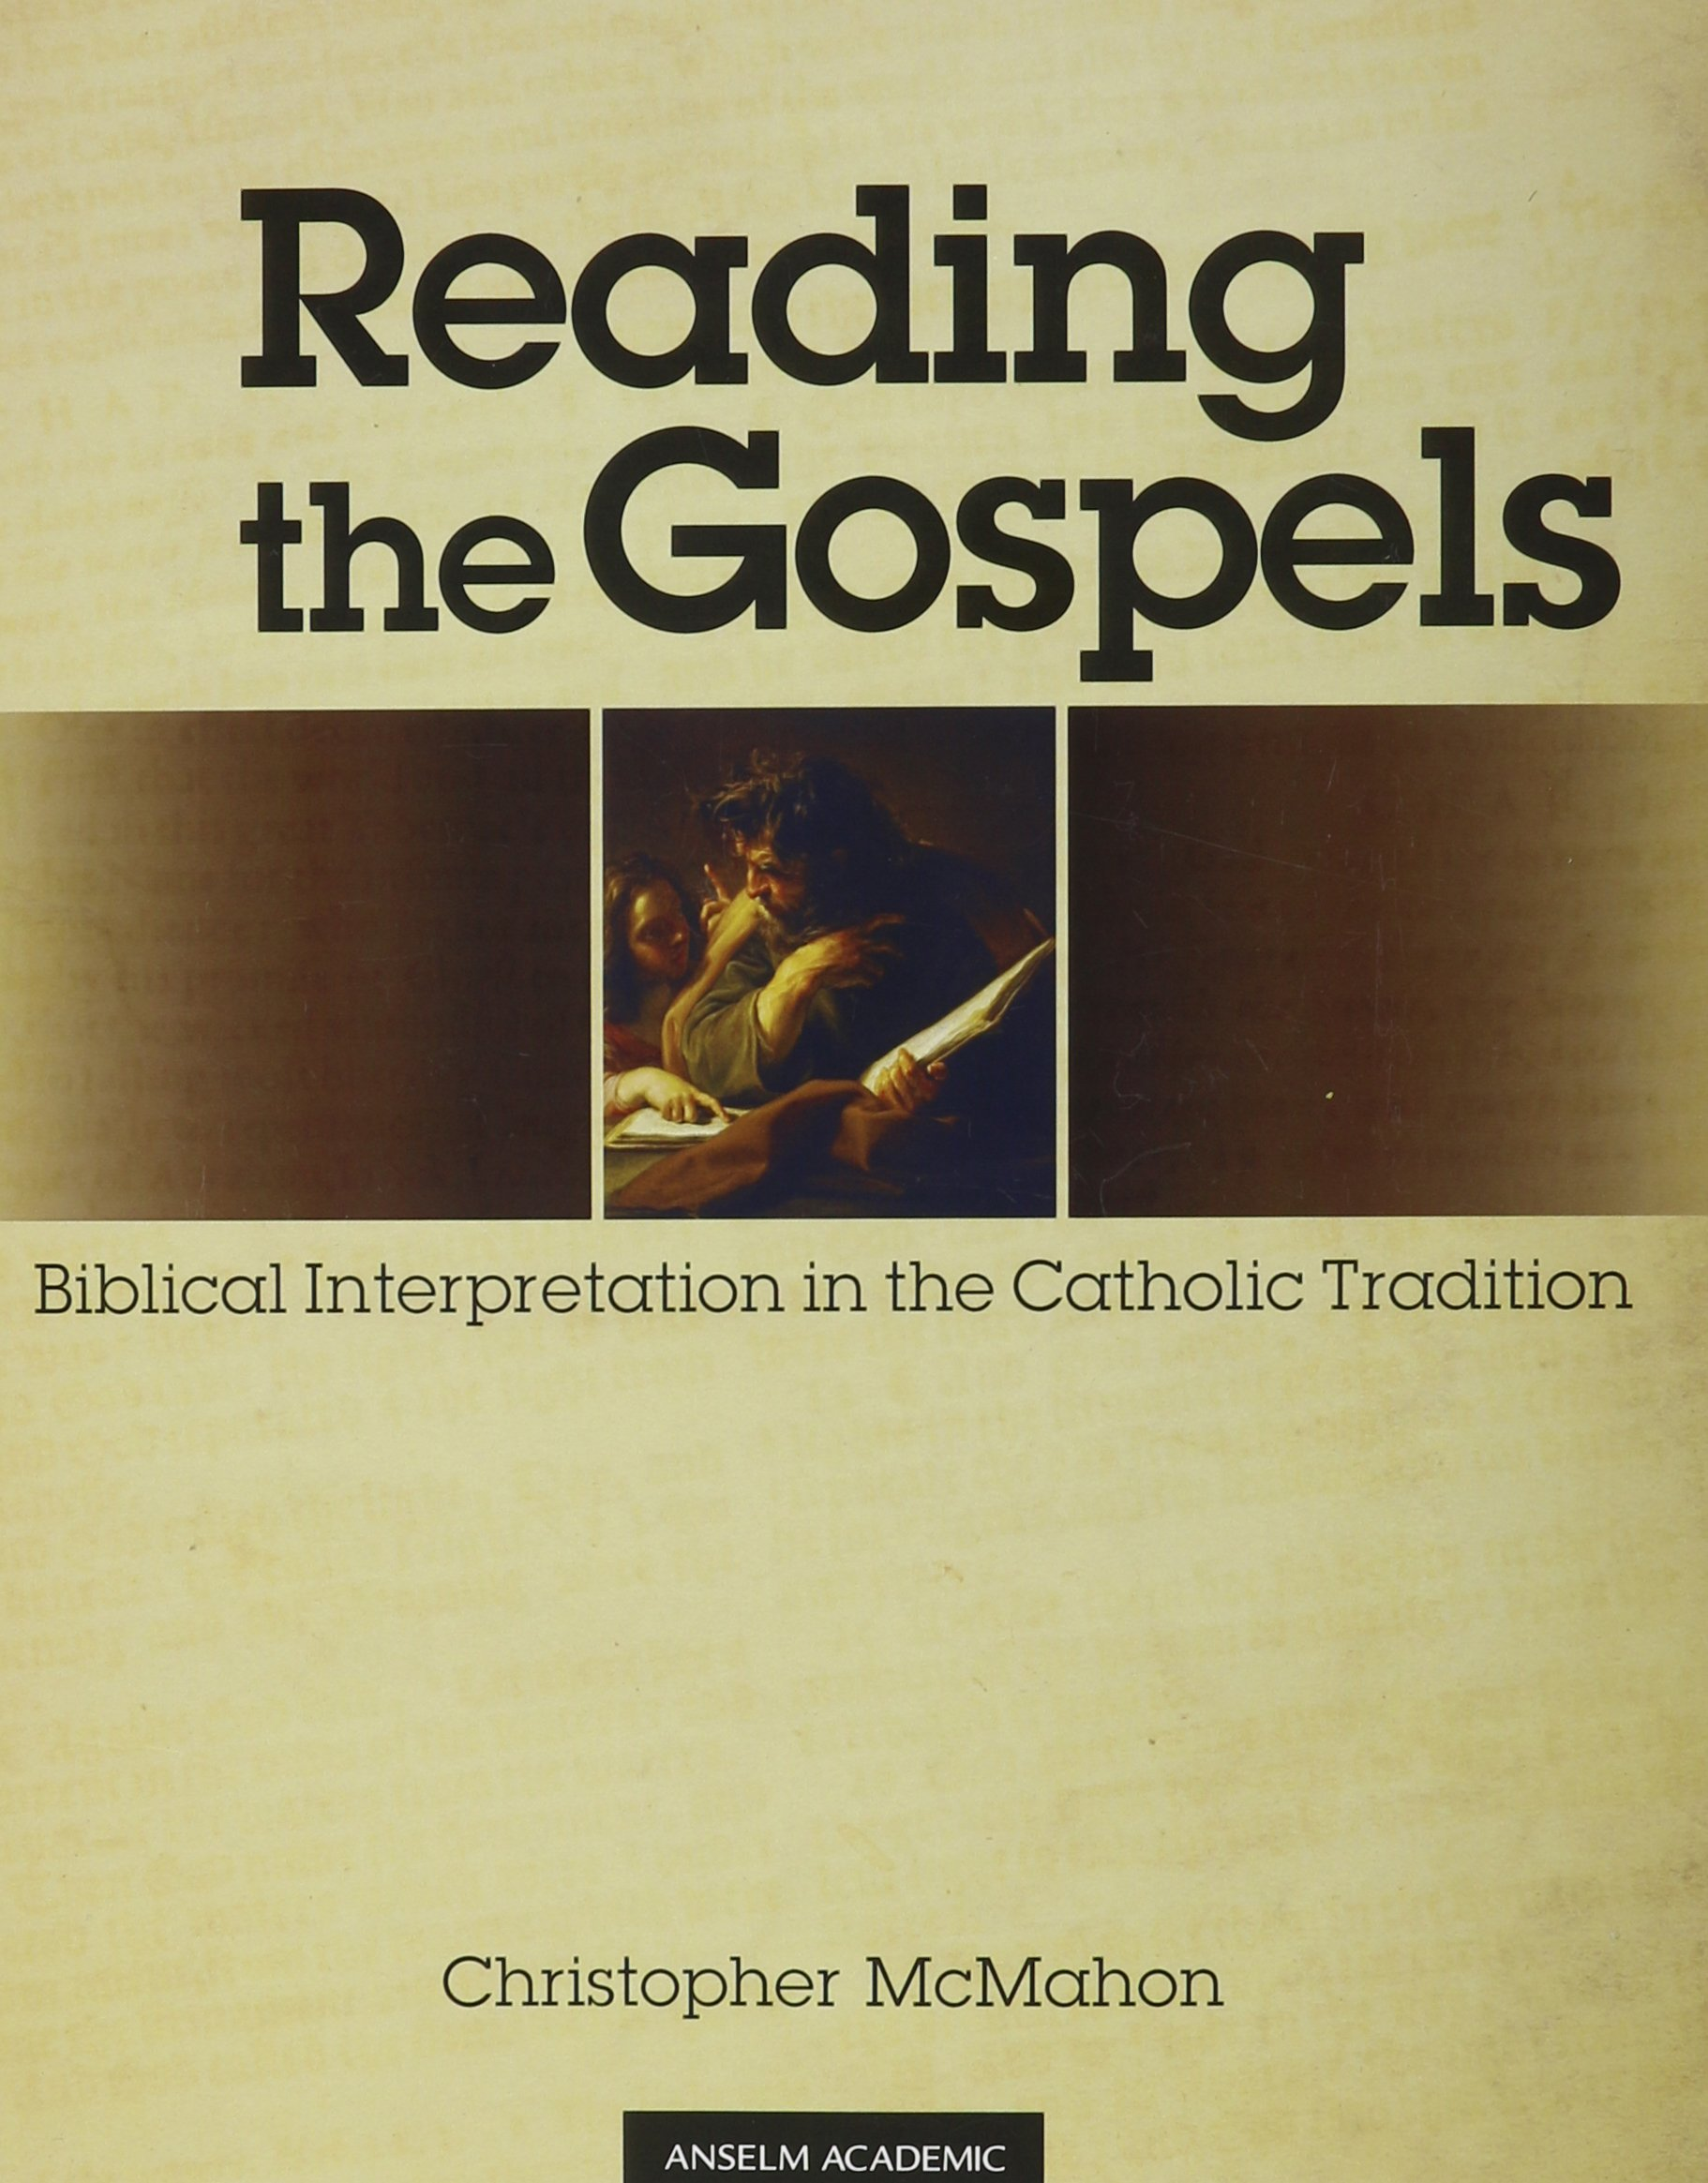 Reading the Gospels Christopher McMahon Amazon